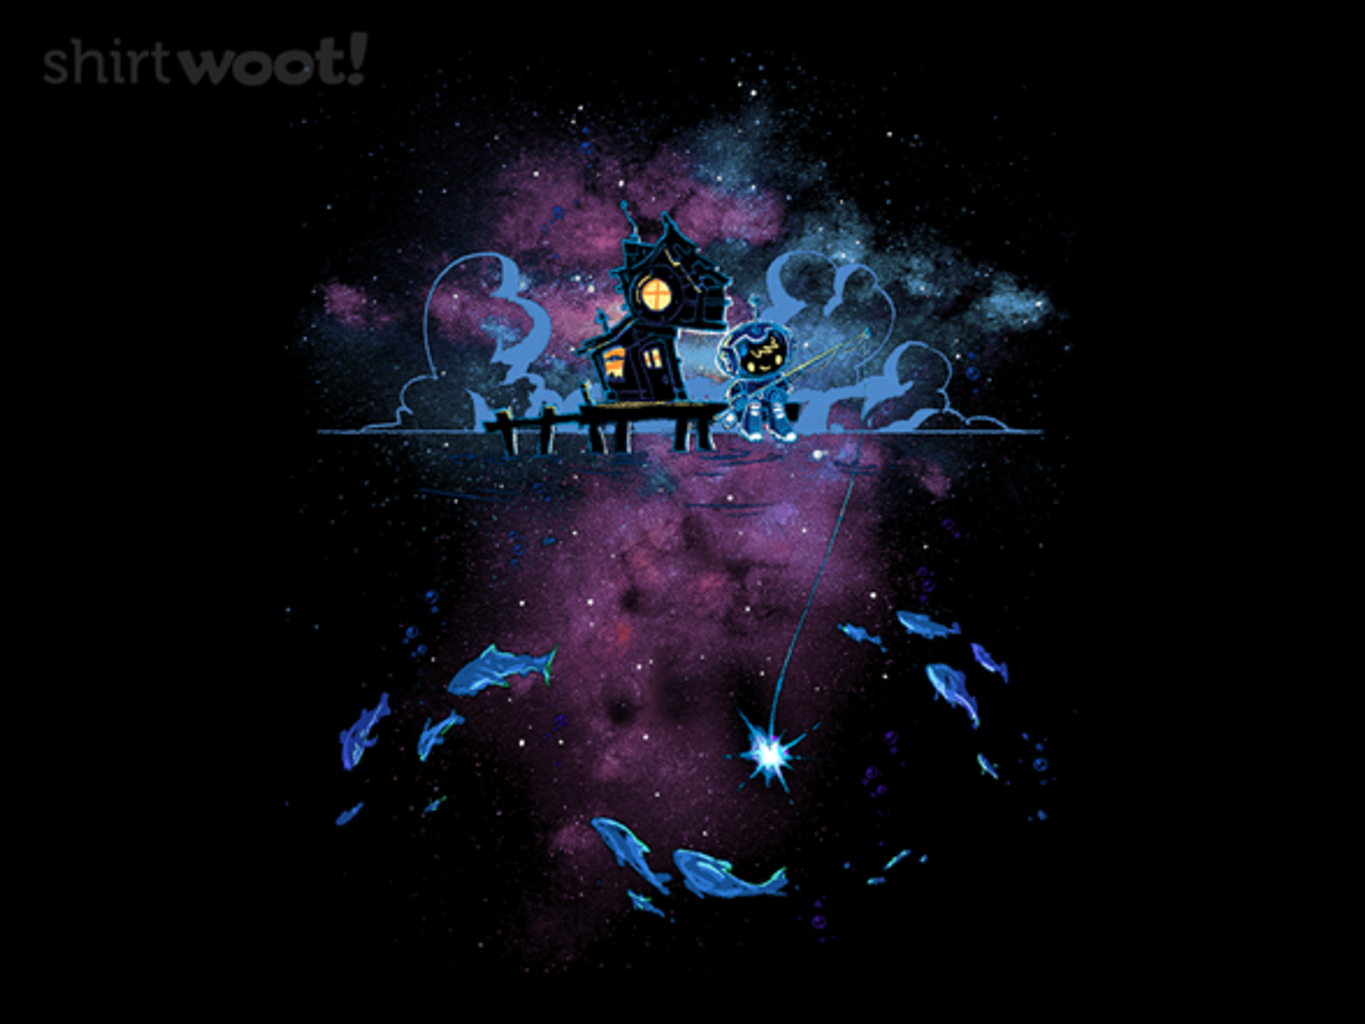 Woot!: Fishing for a Star